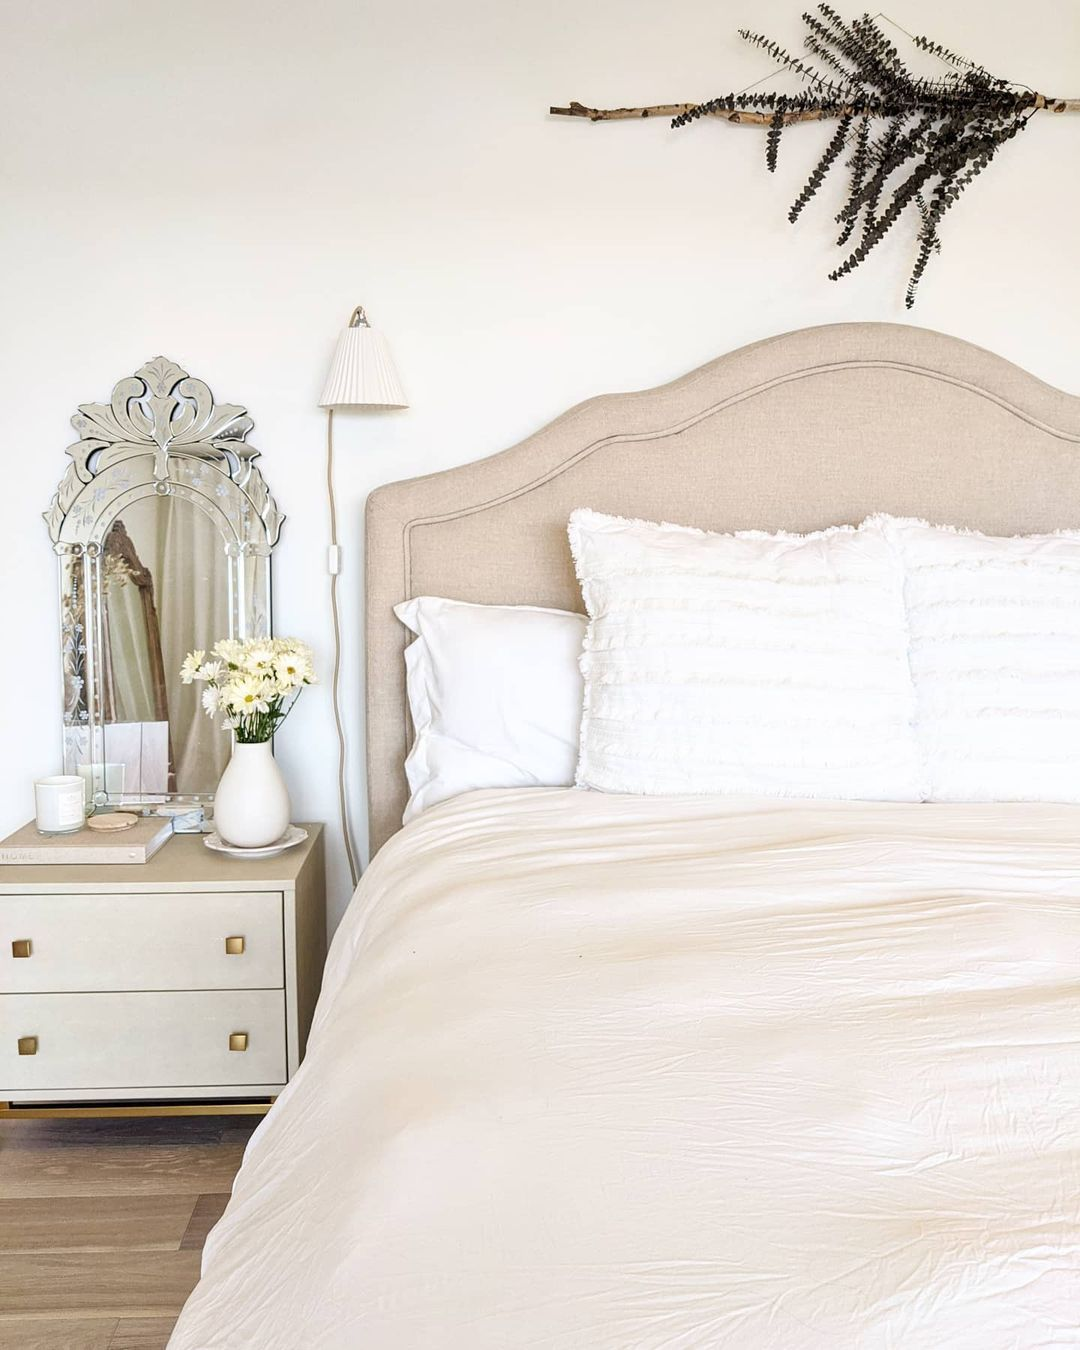 Soft neutral bedroom with a vintage feel.